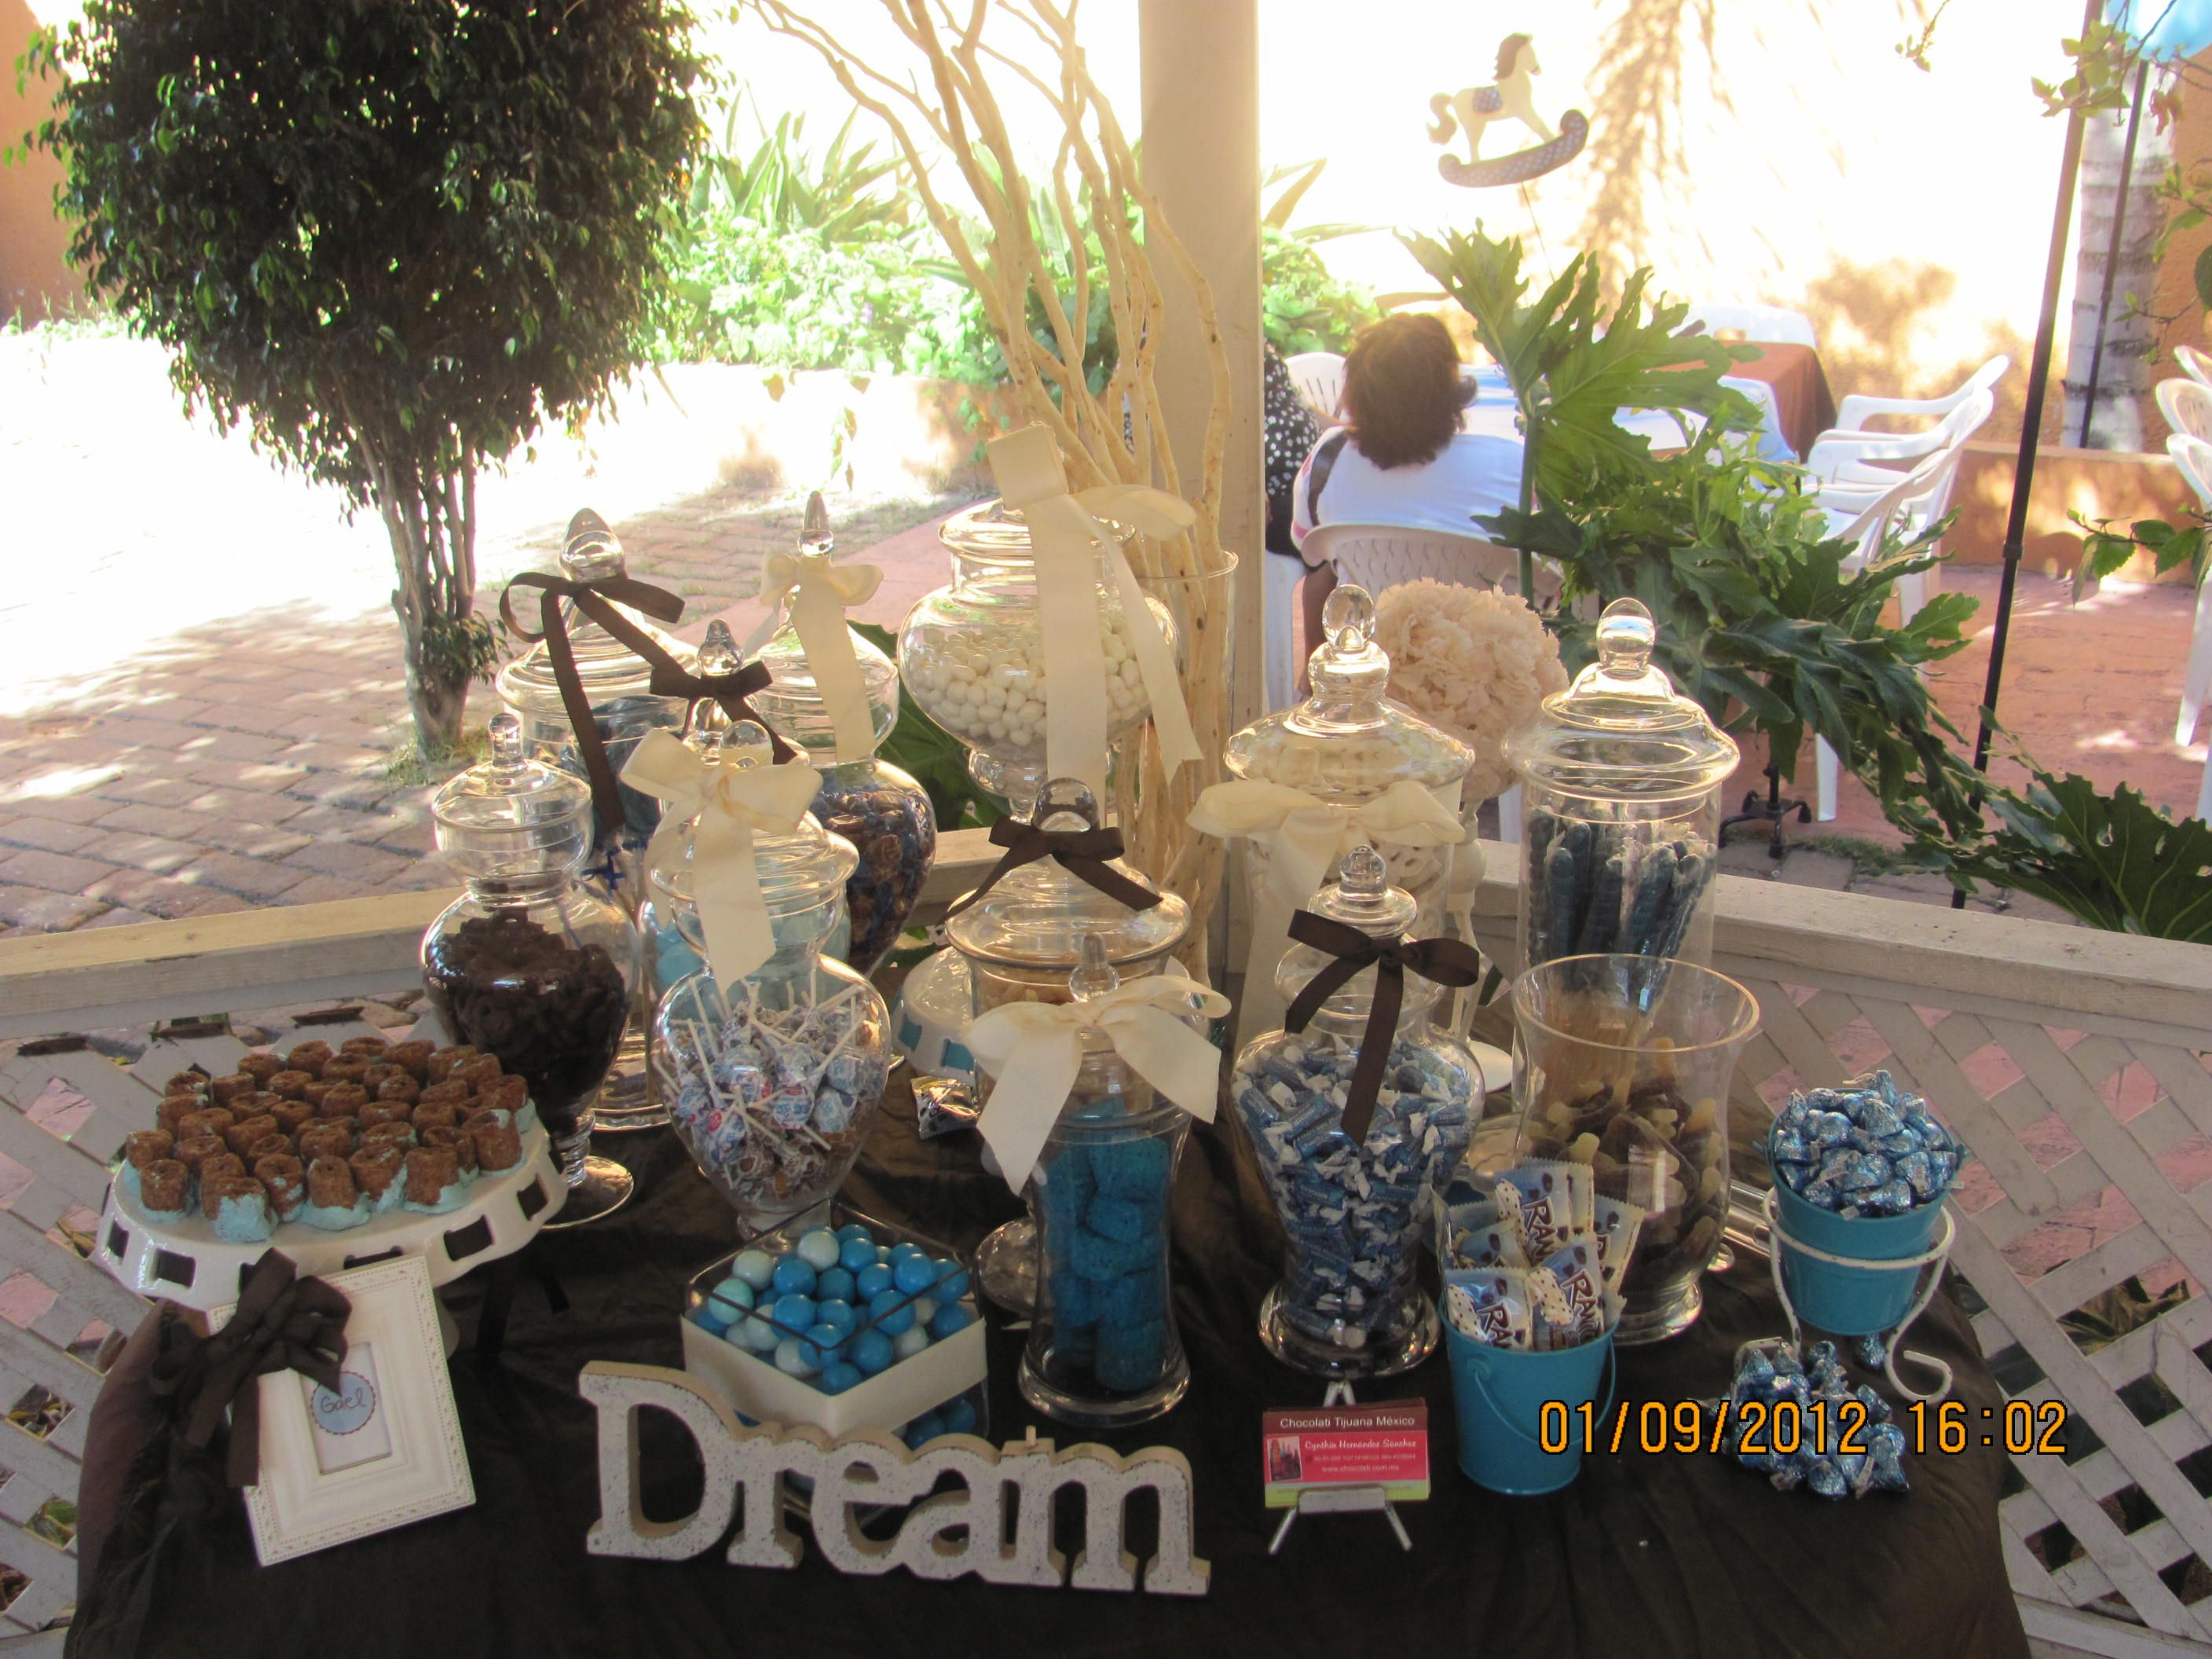 Candy buffet baby shower mesa de dulces azul cafe y beige for Mesa dulce para baby shower